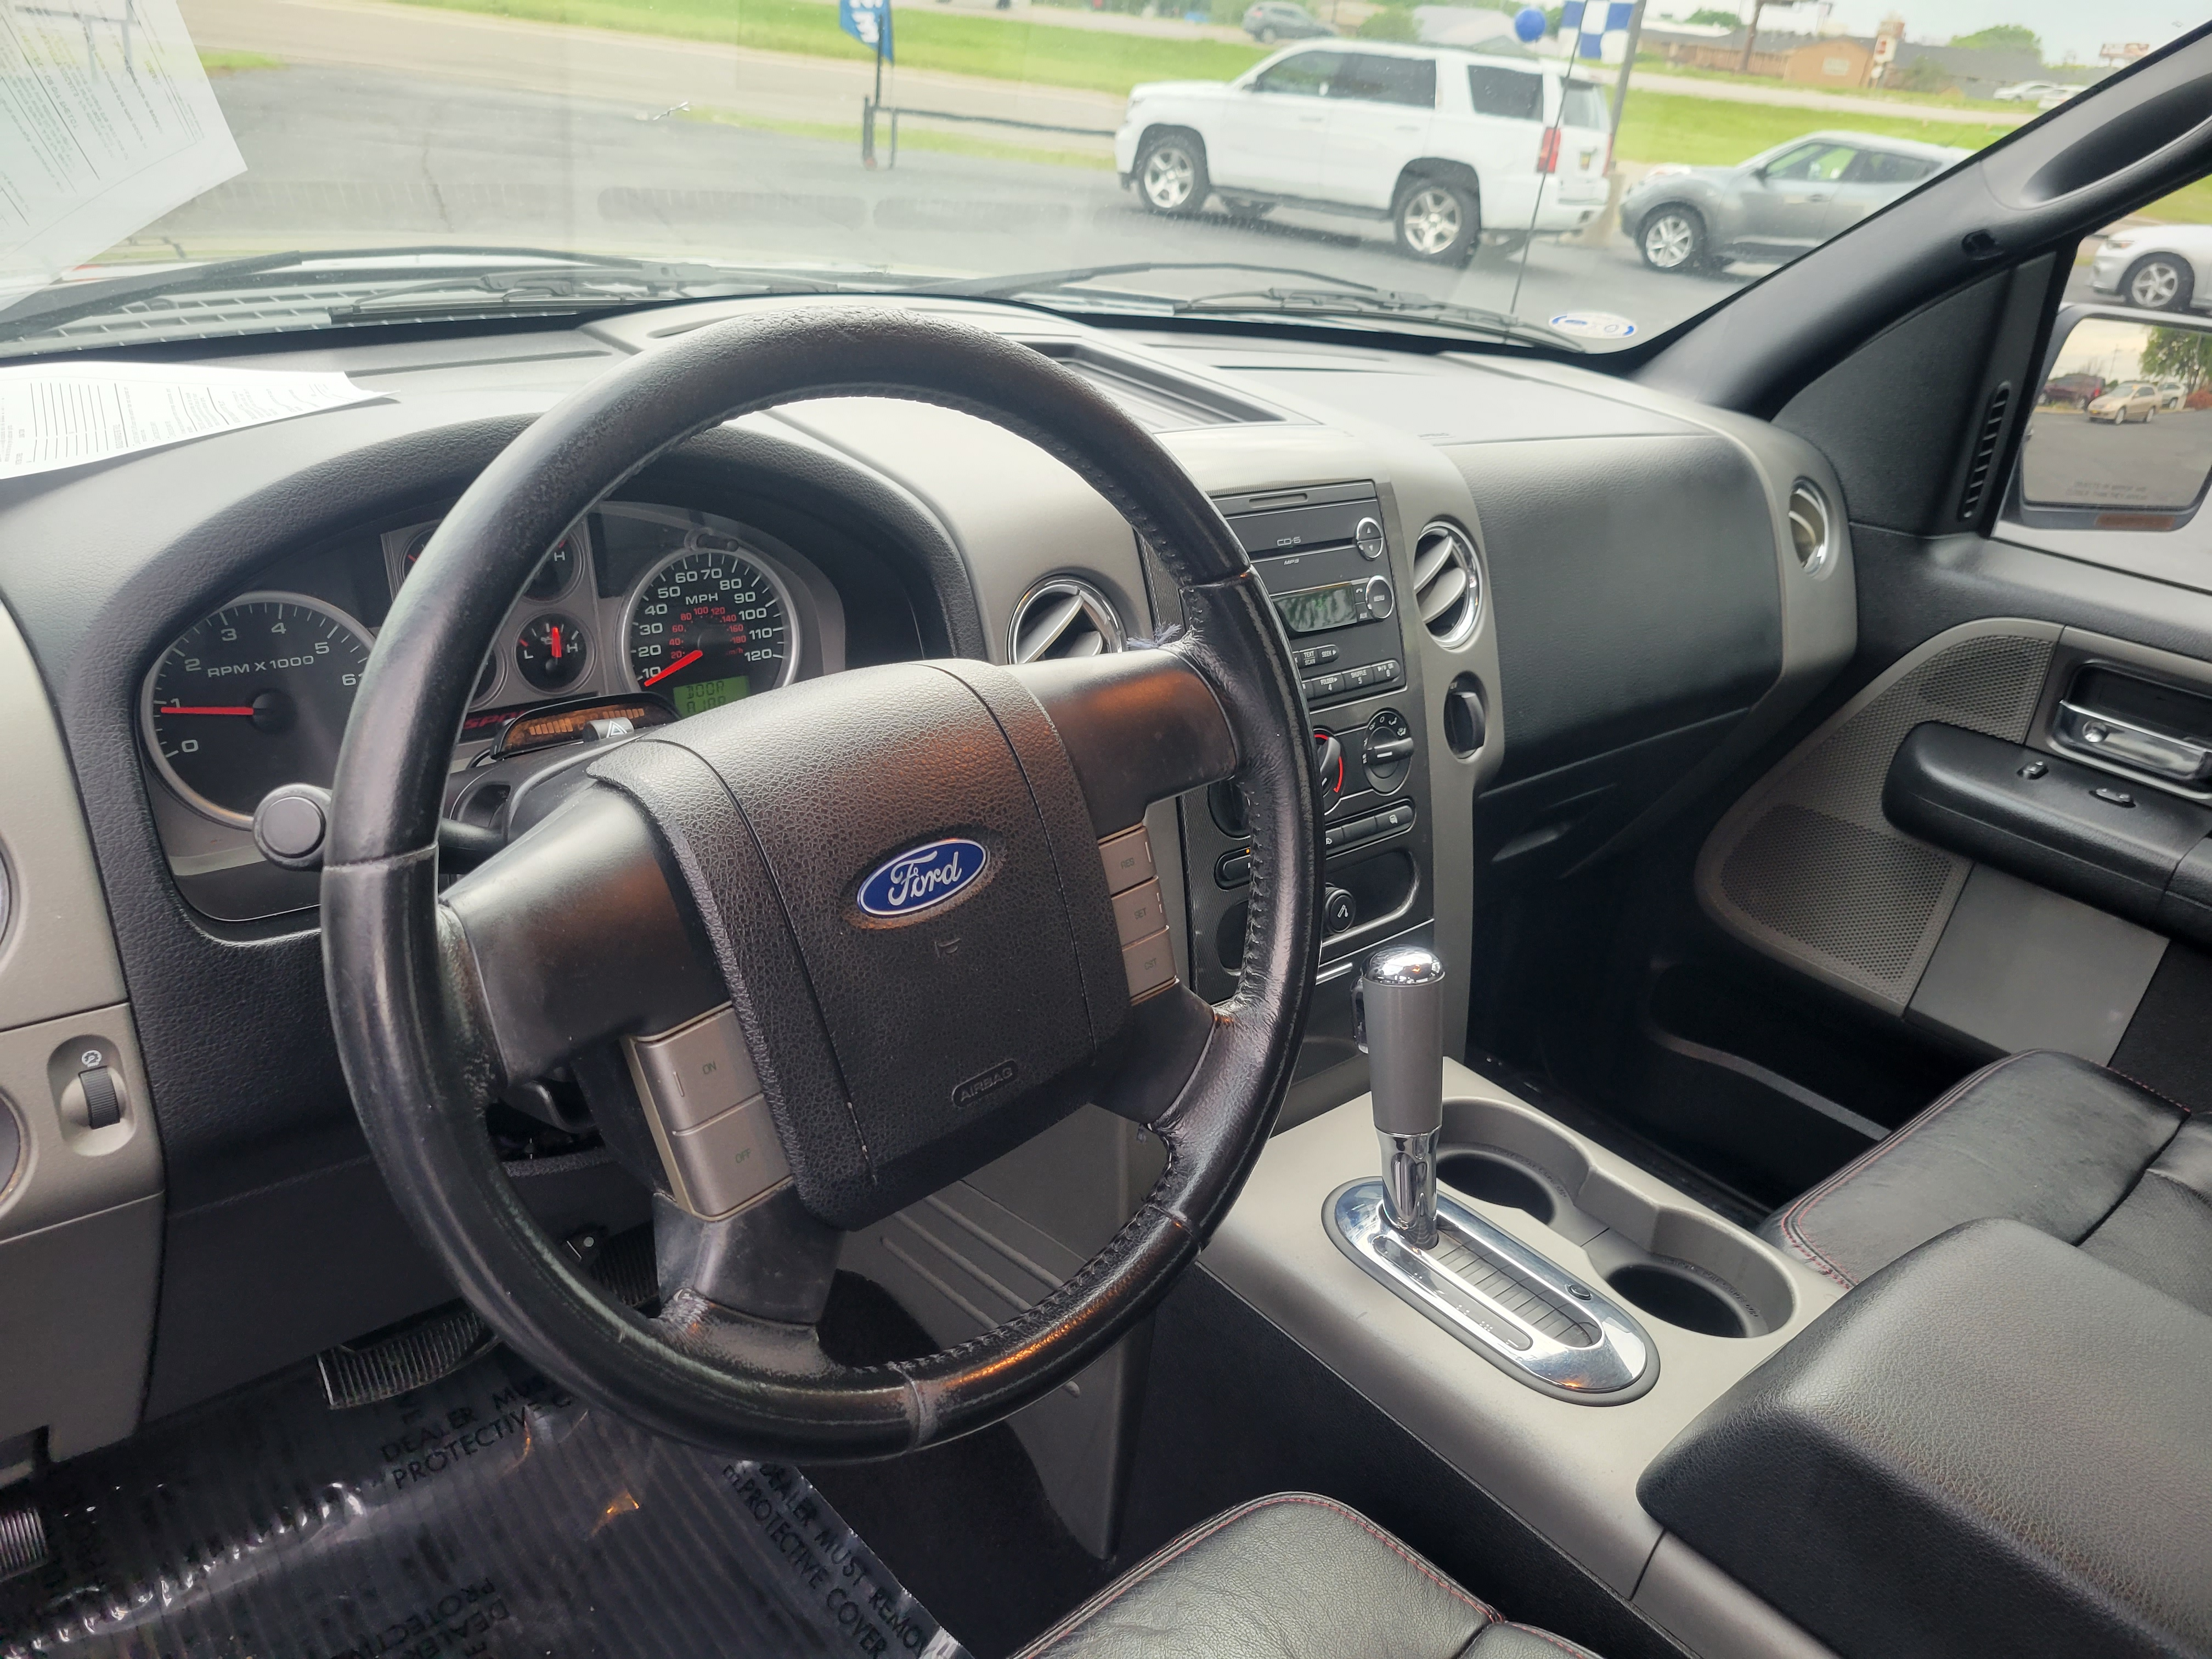 used vehicle - Truck FORD F-150 2008